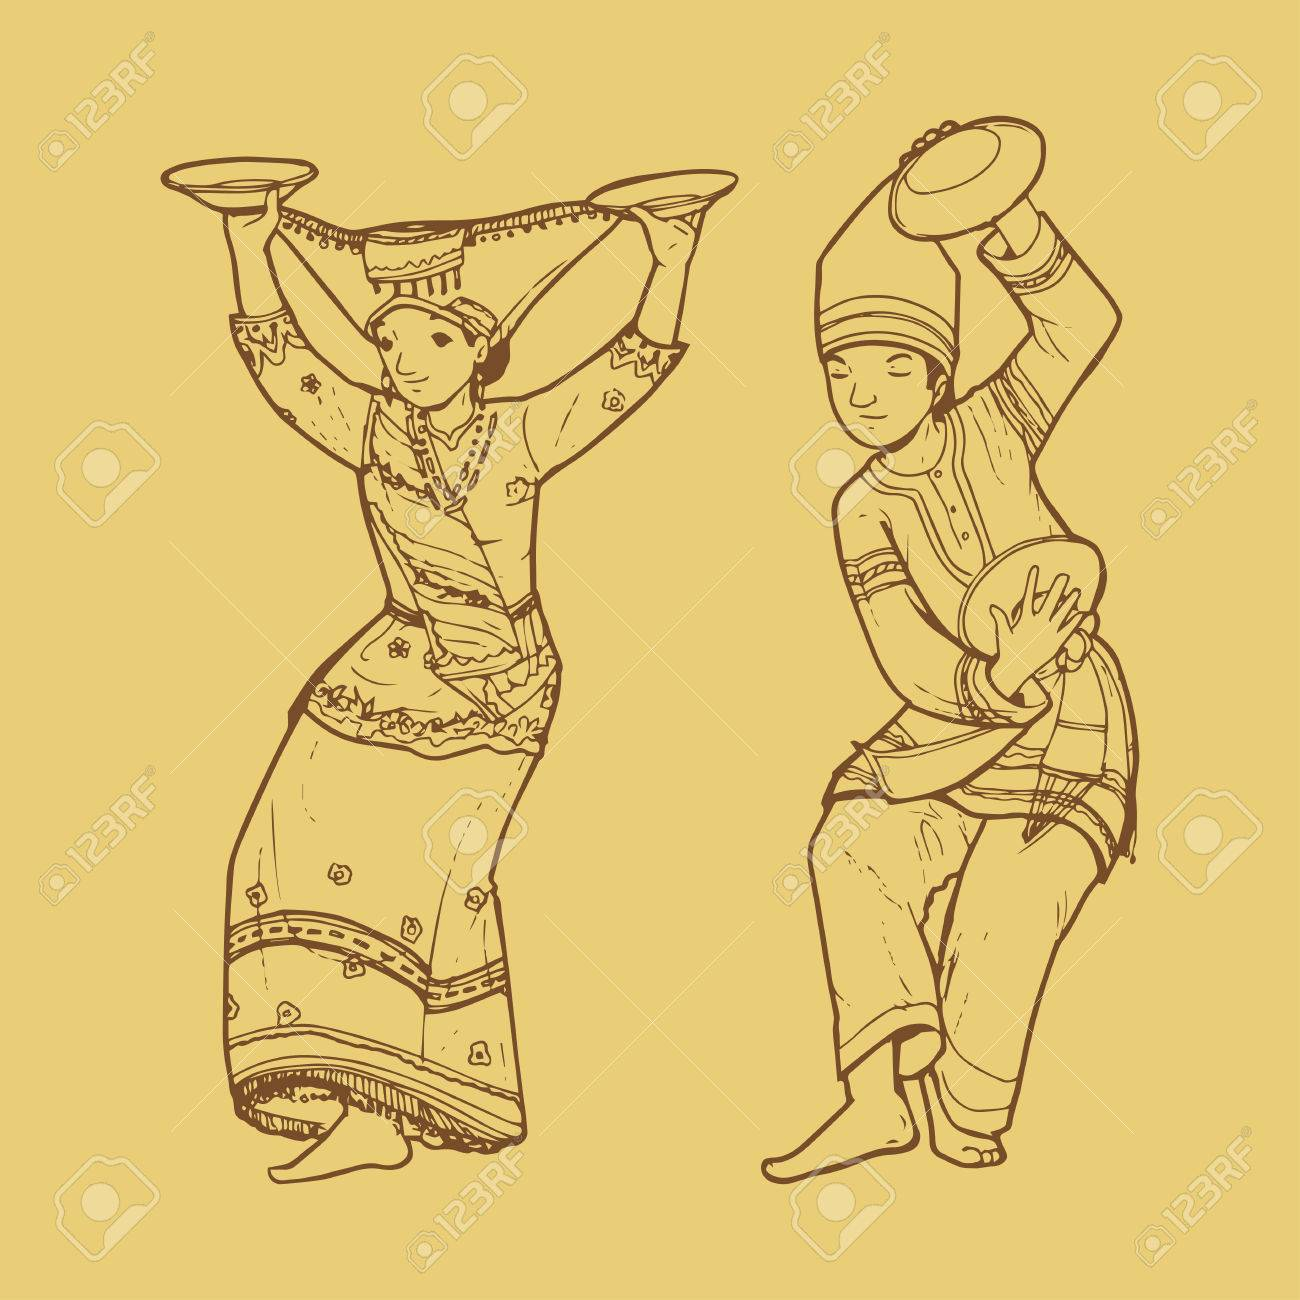 Line Art Illustration Of Traditional West Sumatra Indonesian